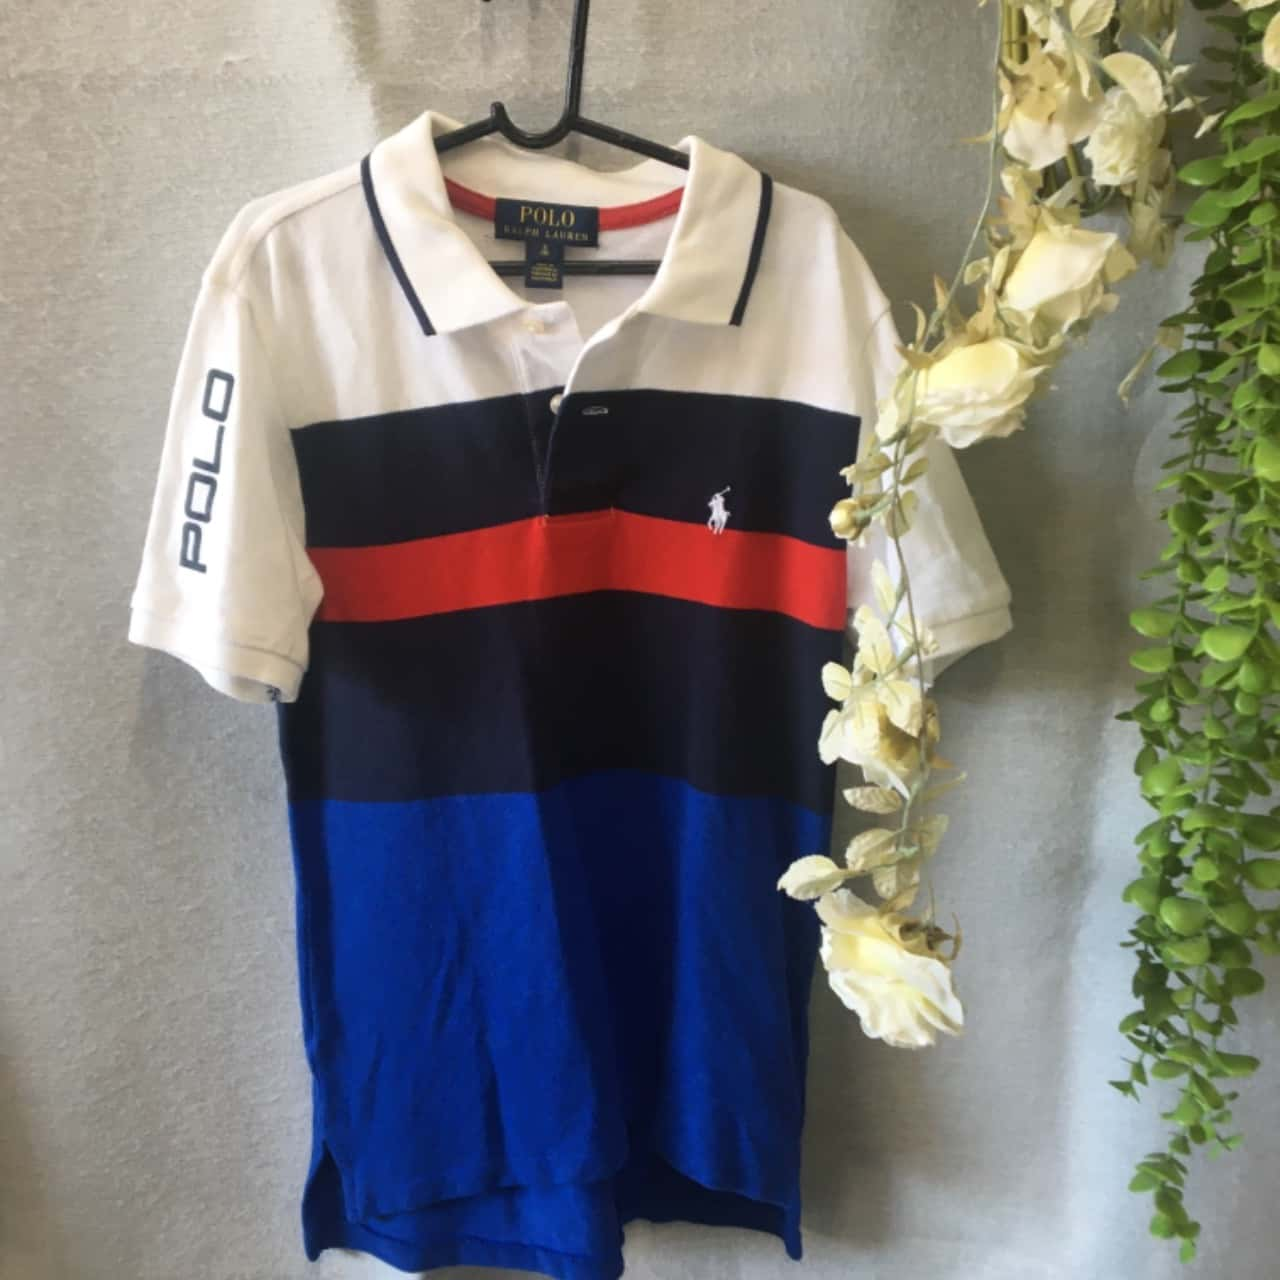 Polo Ralph Lauren Kids  Size 8/S Tops & T-Shirts Blue/Navy Blue/Red/White